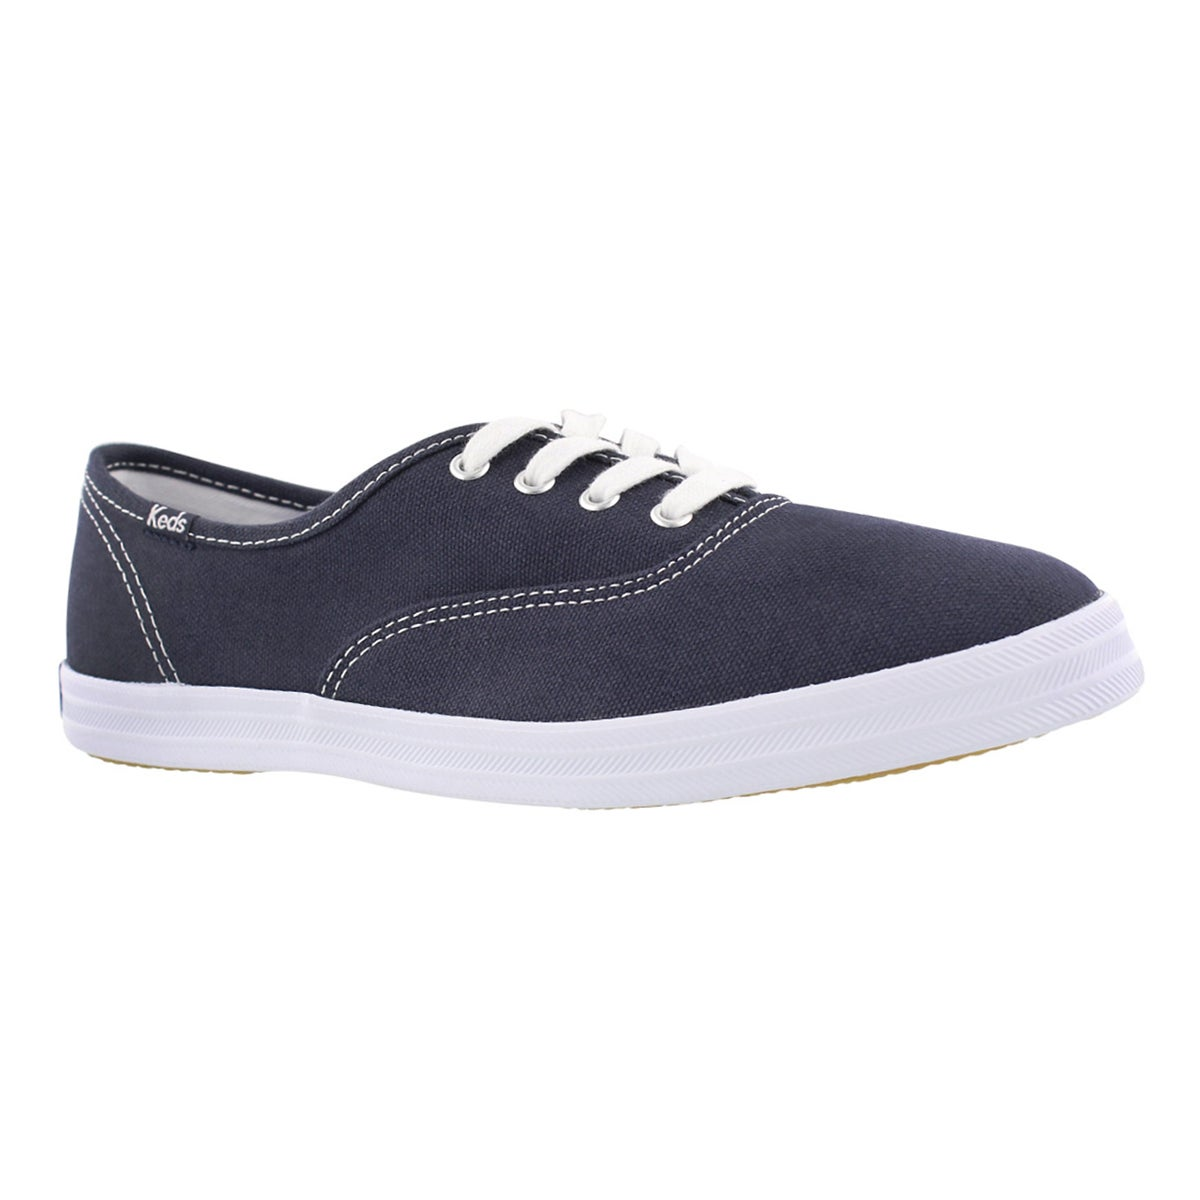 Women's CHAMPION OXFORD navy CVO sneakers